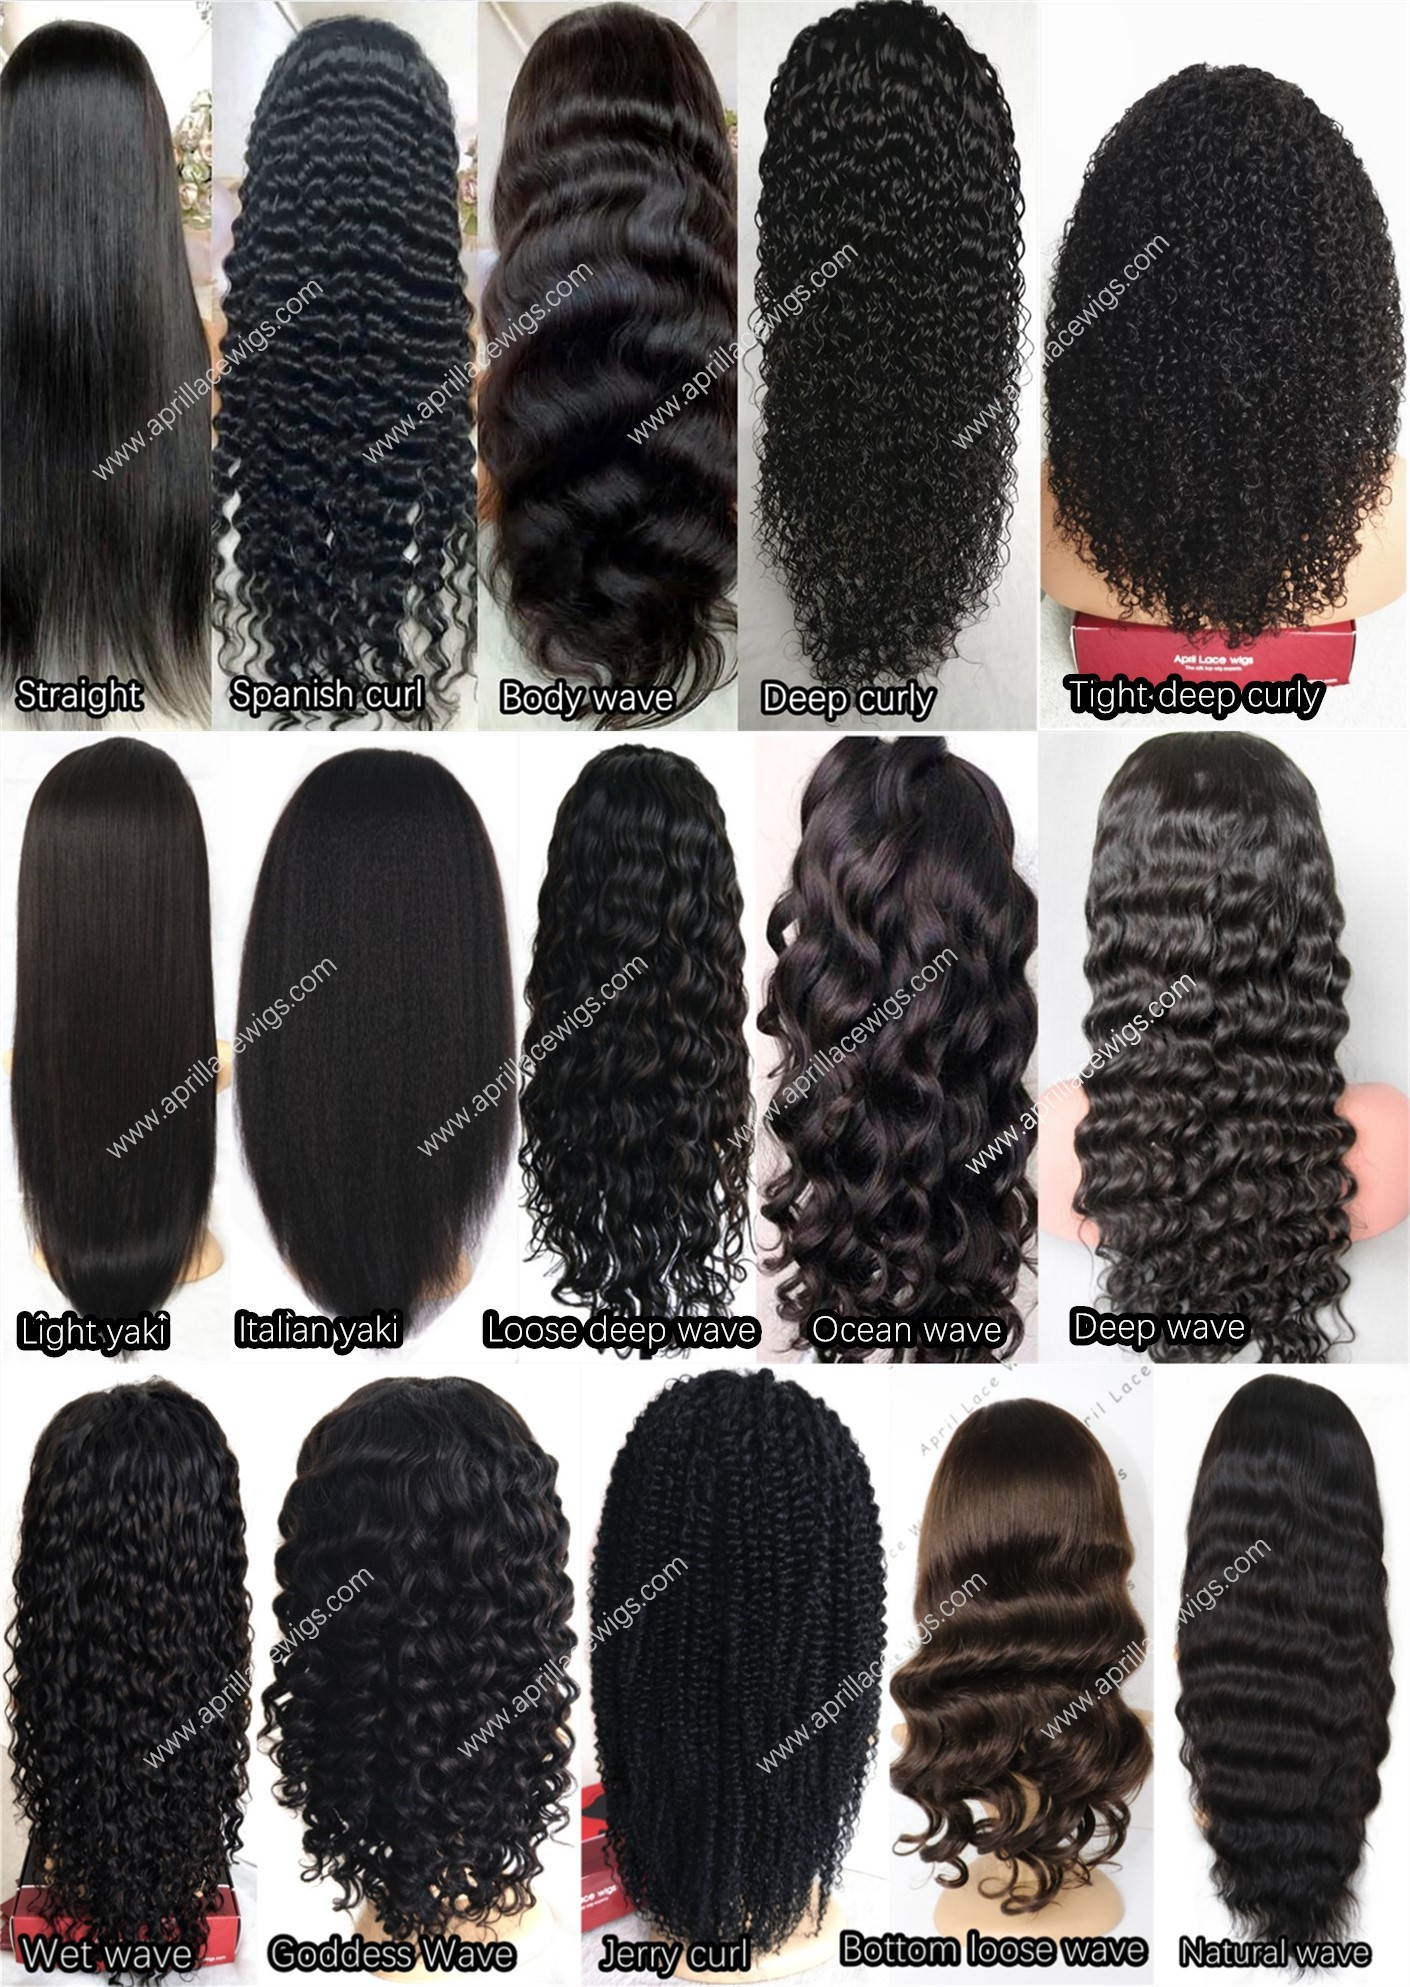 HD lace wig hair texture chart